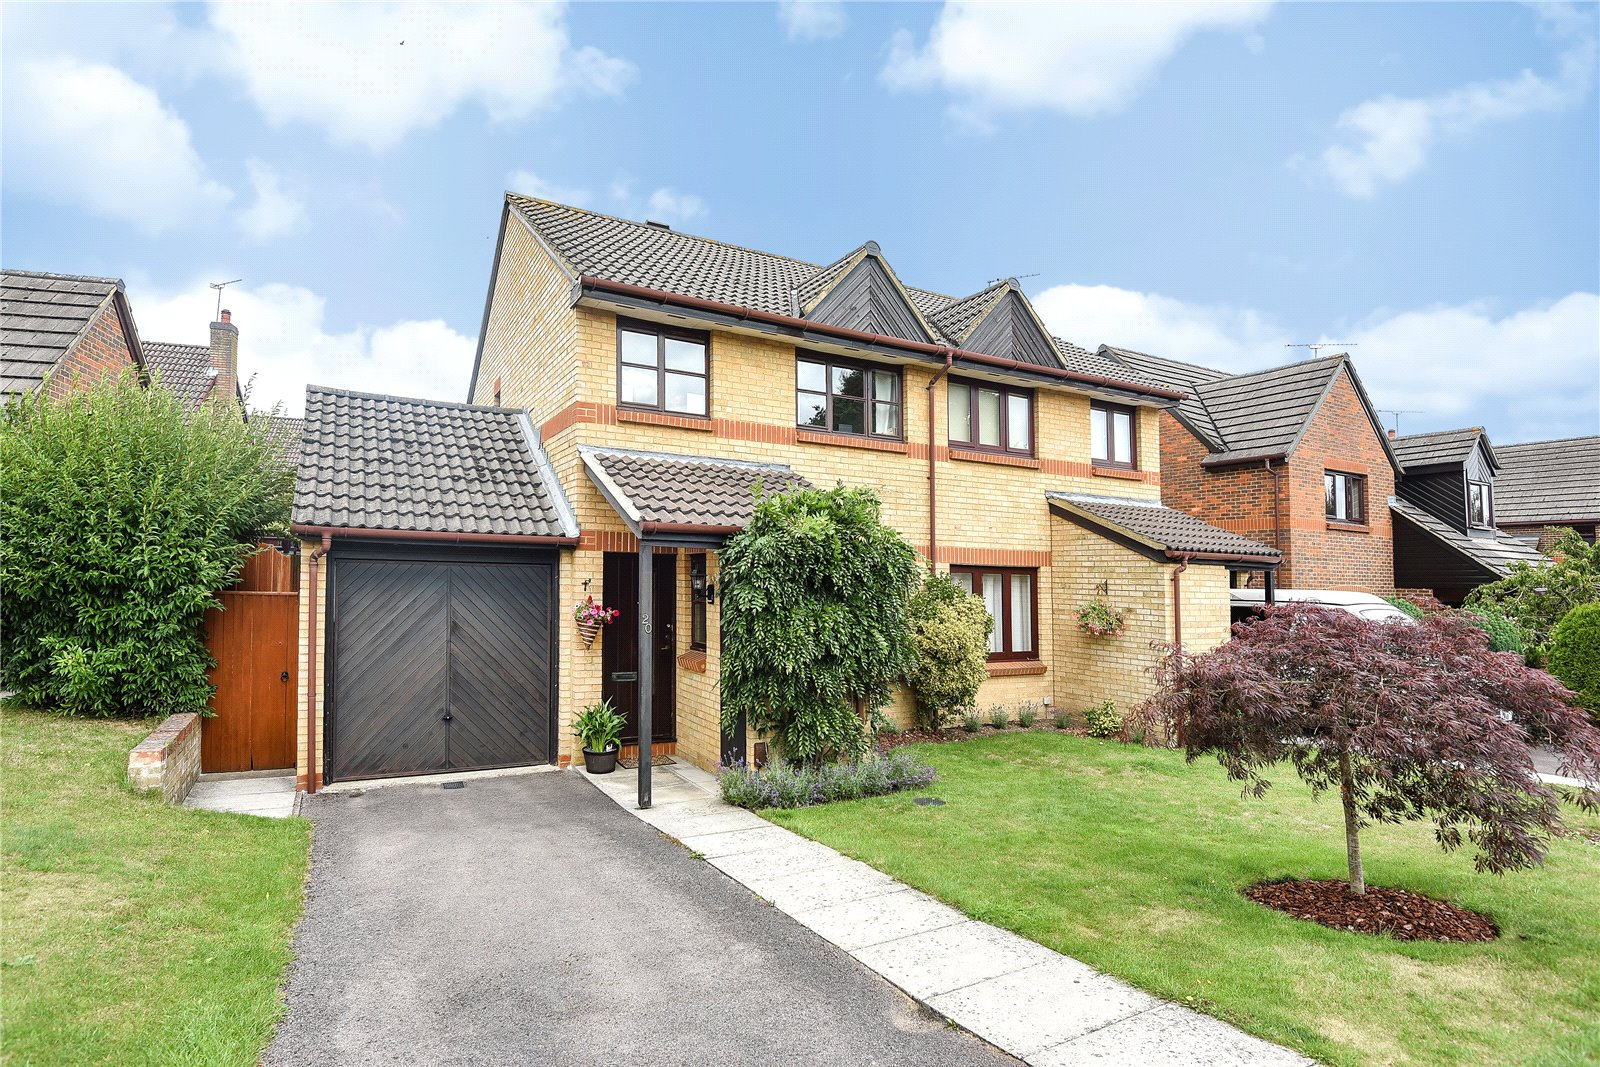 3 Bedrooms Semi Detached House for sale in Bishops Drive, Wokingham, Berkshire, RG40